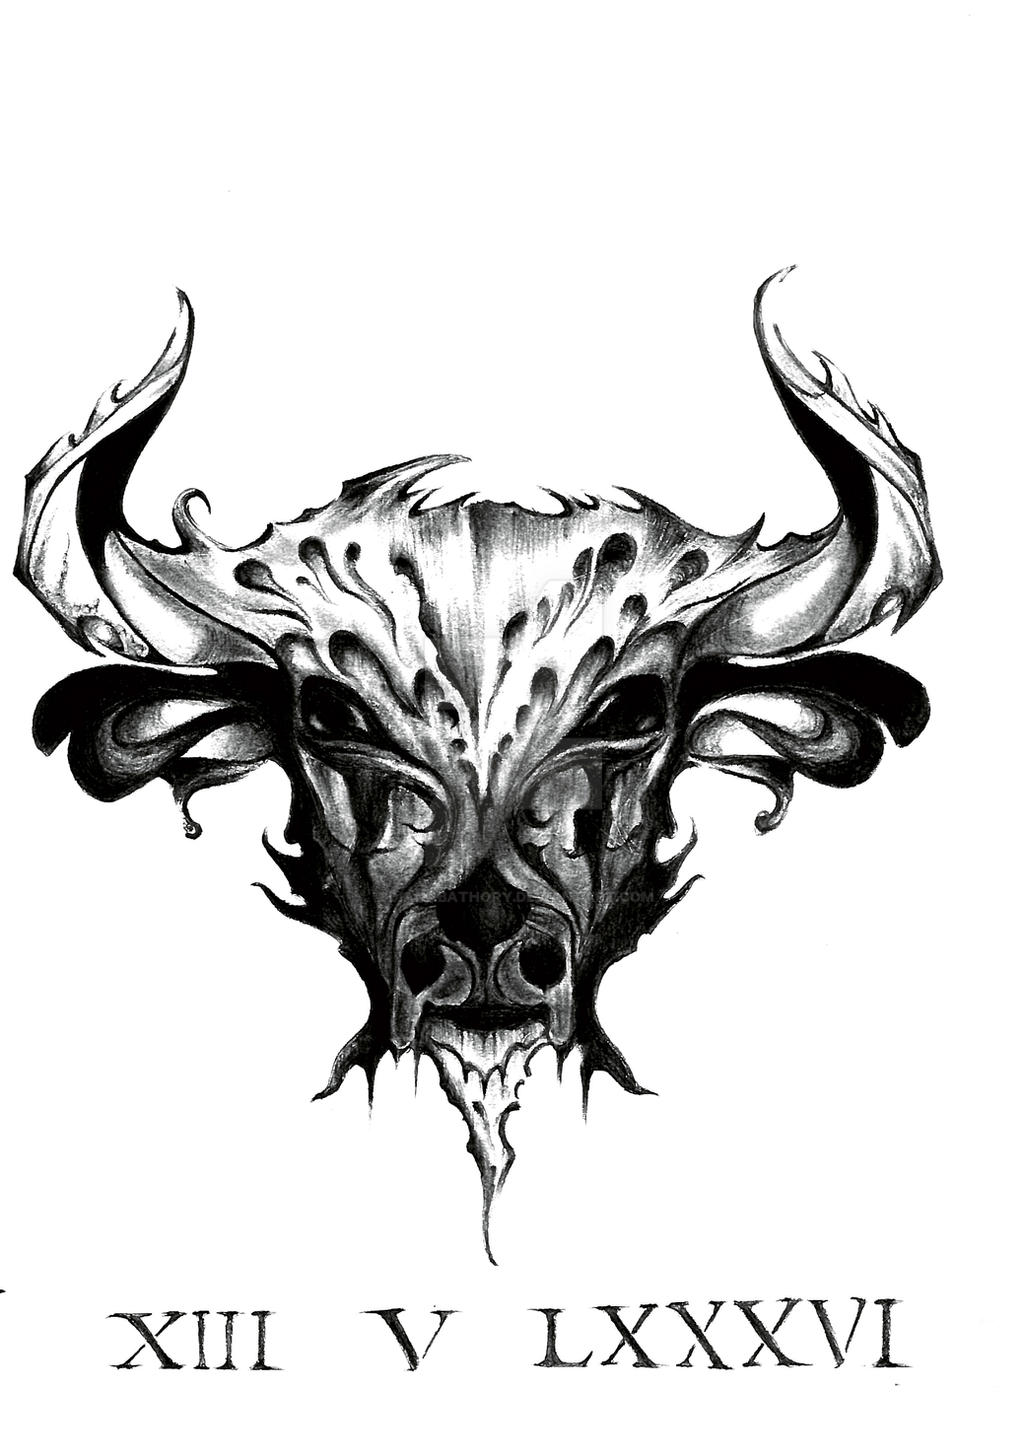 taurus sign tattoo design by dianabathory on deviantart. Black Bedroom Furniture Sets. Home Design Ideas